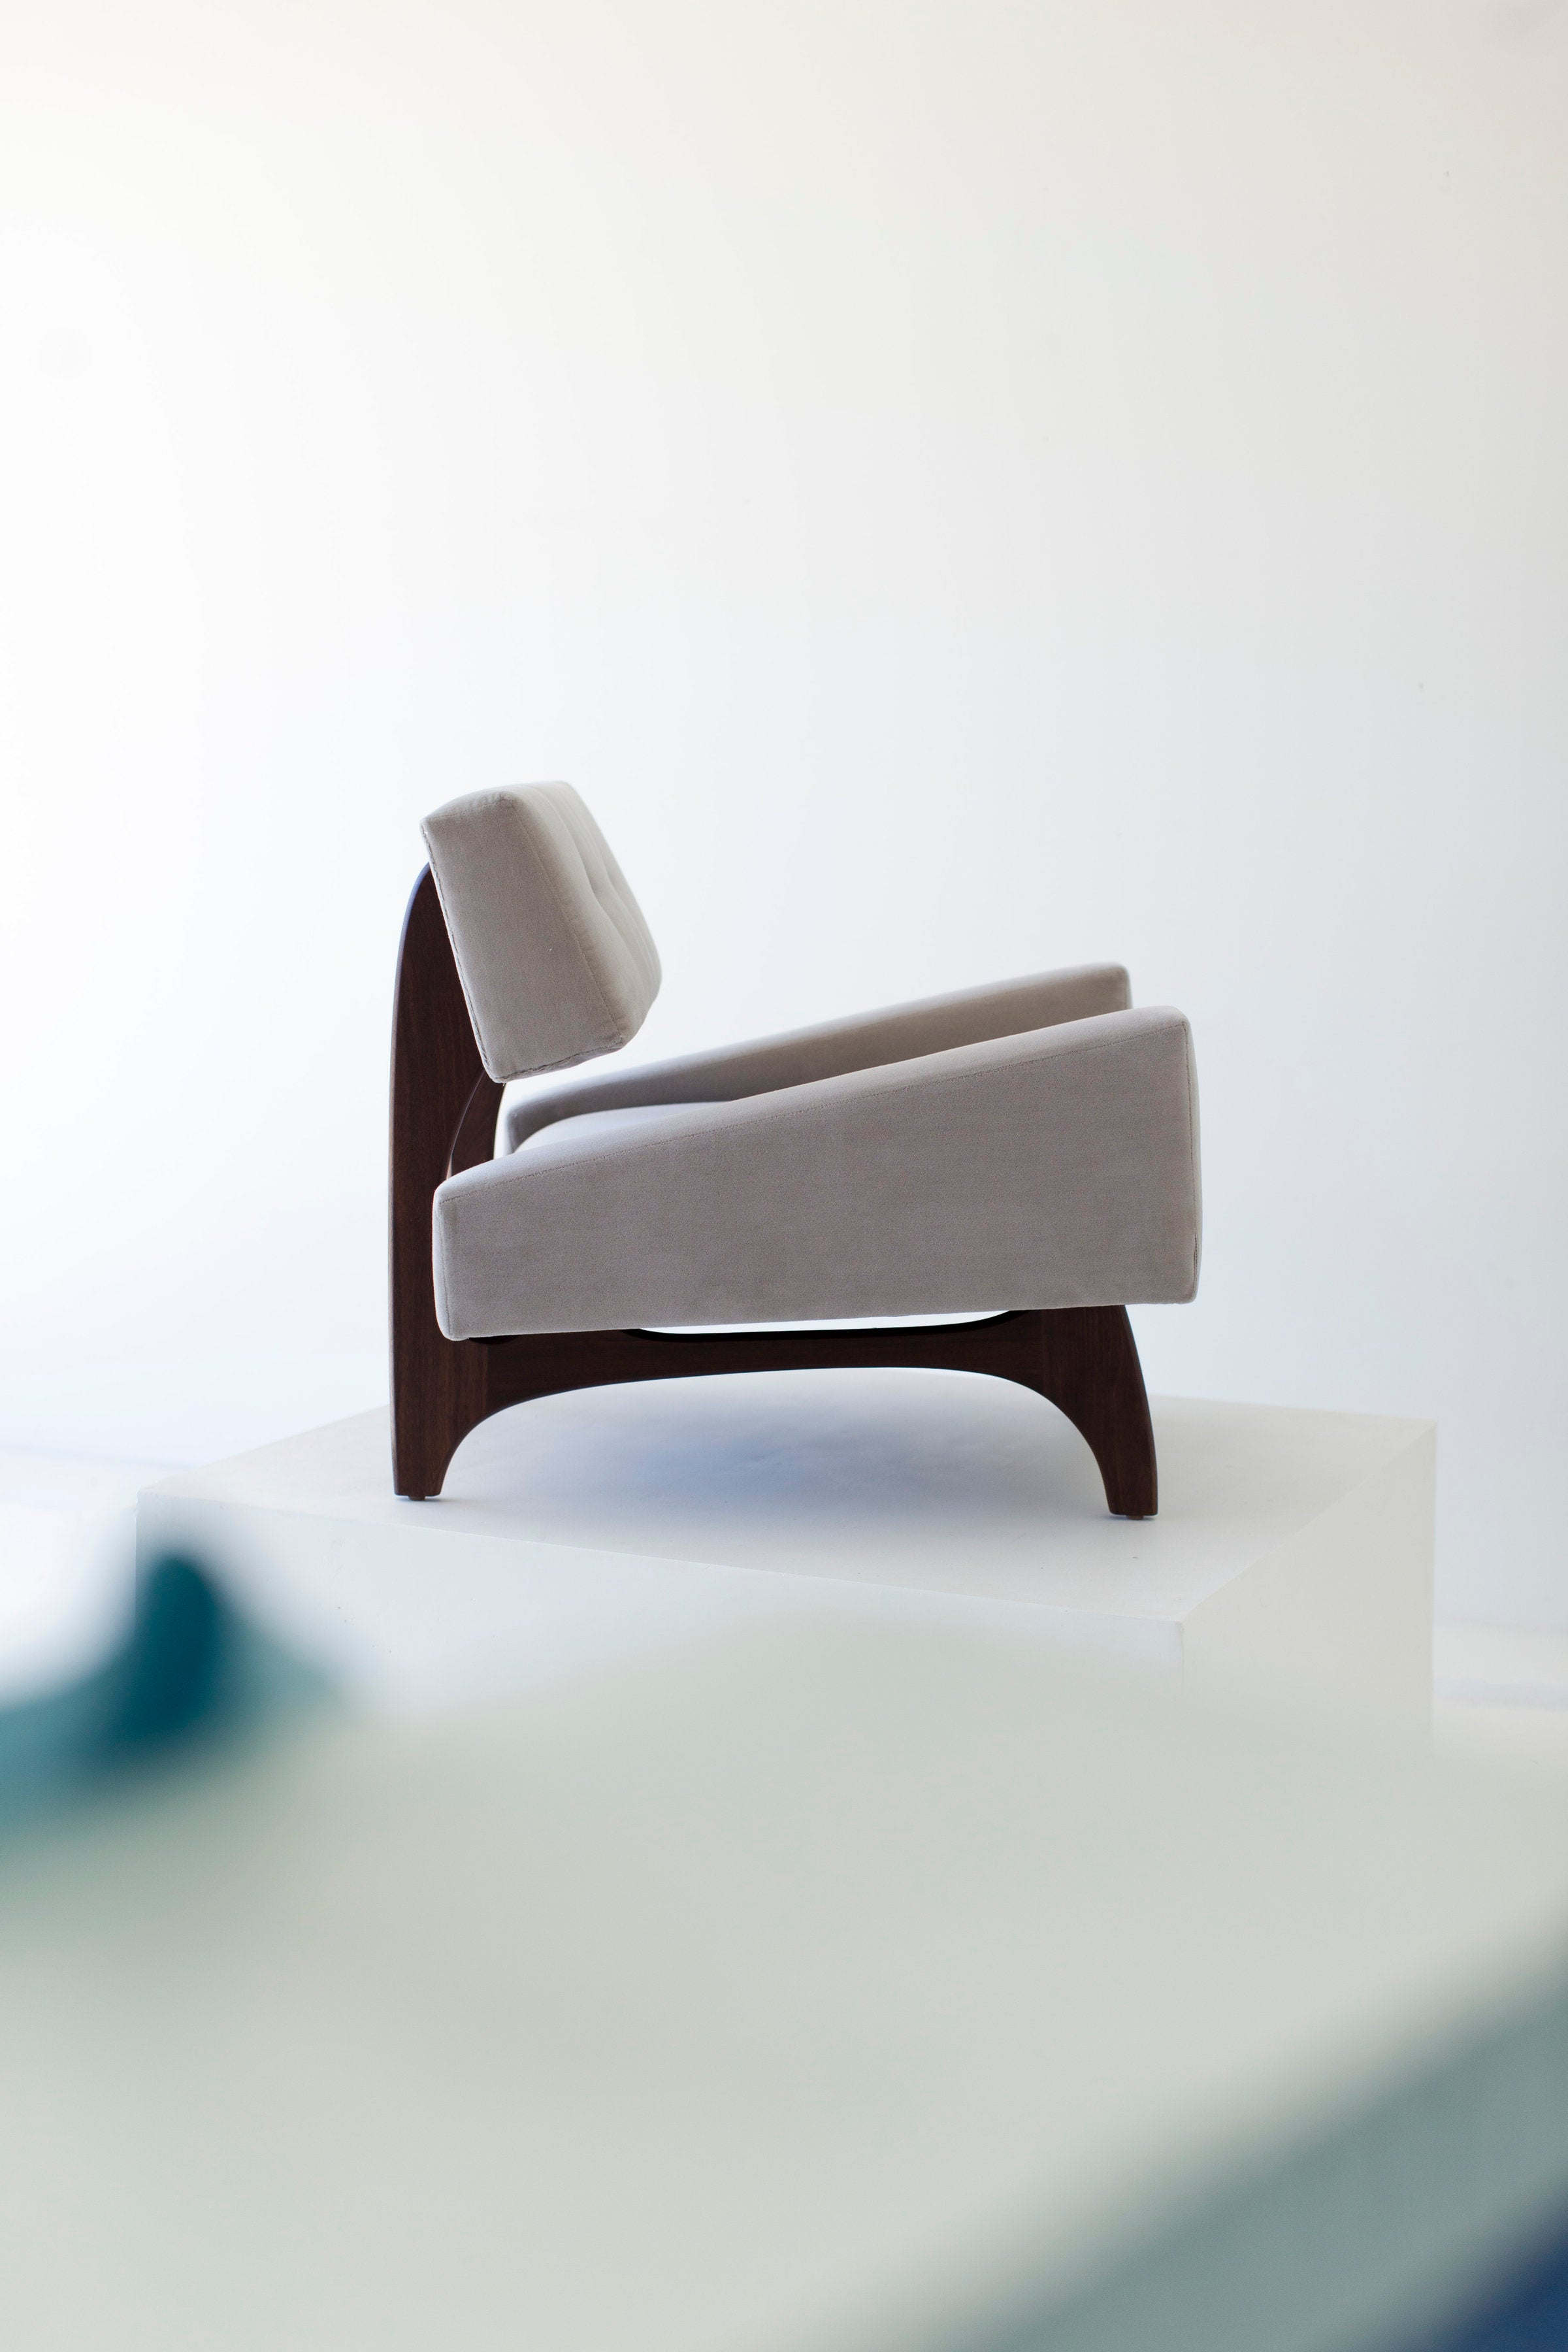 Craft Associates Modern Lounge Chair   1519   The Canadian